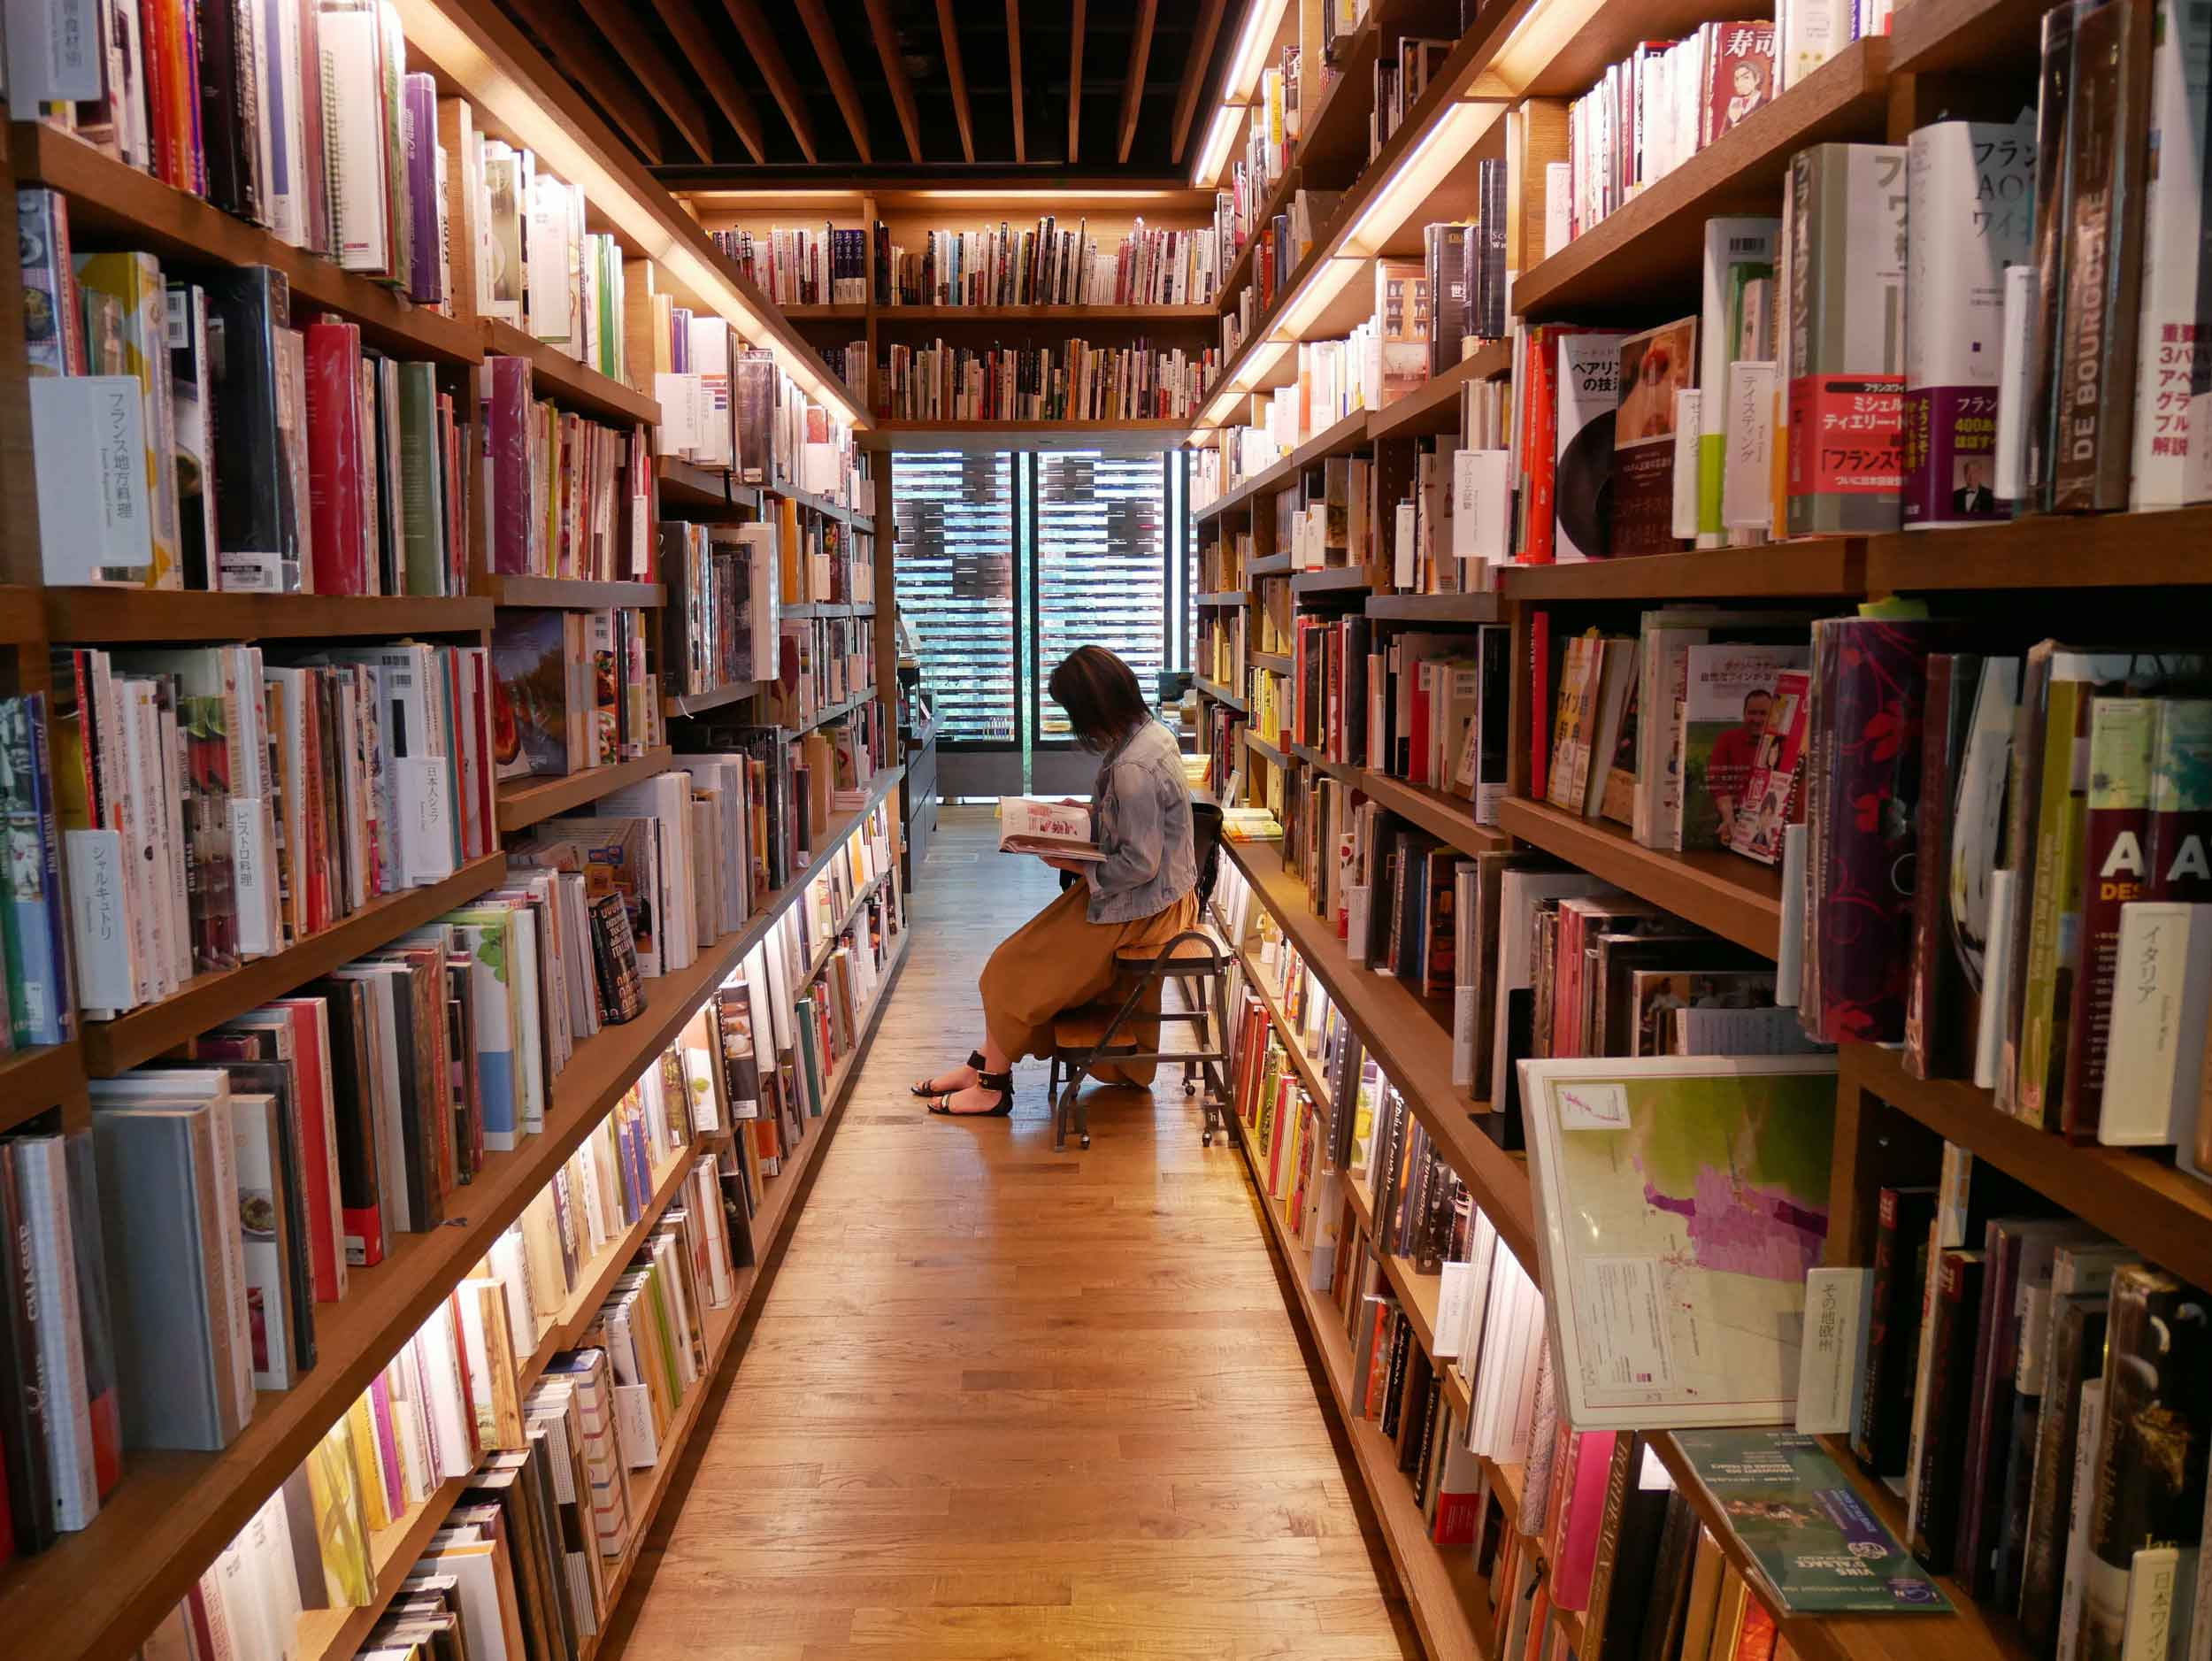 The tranquil rows of books inside Daikanyama T-Site.